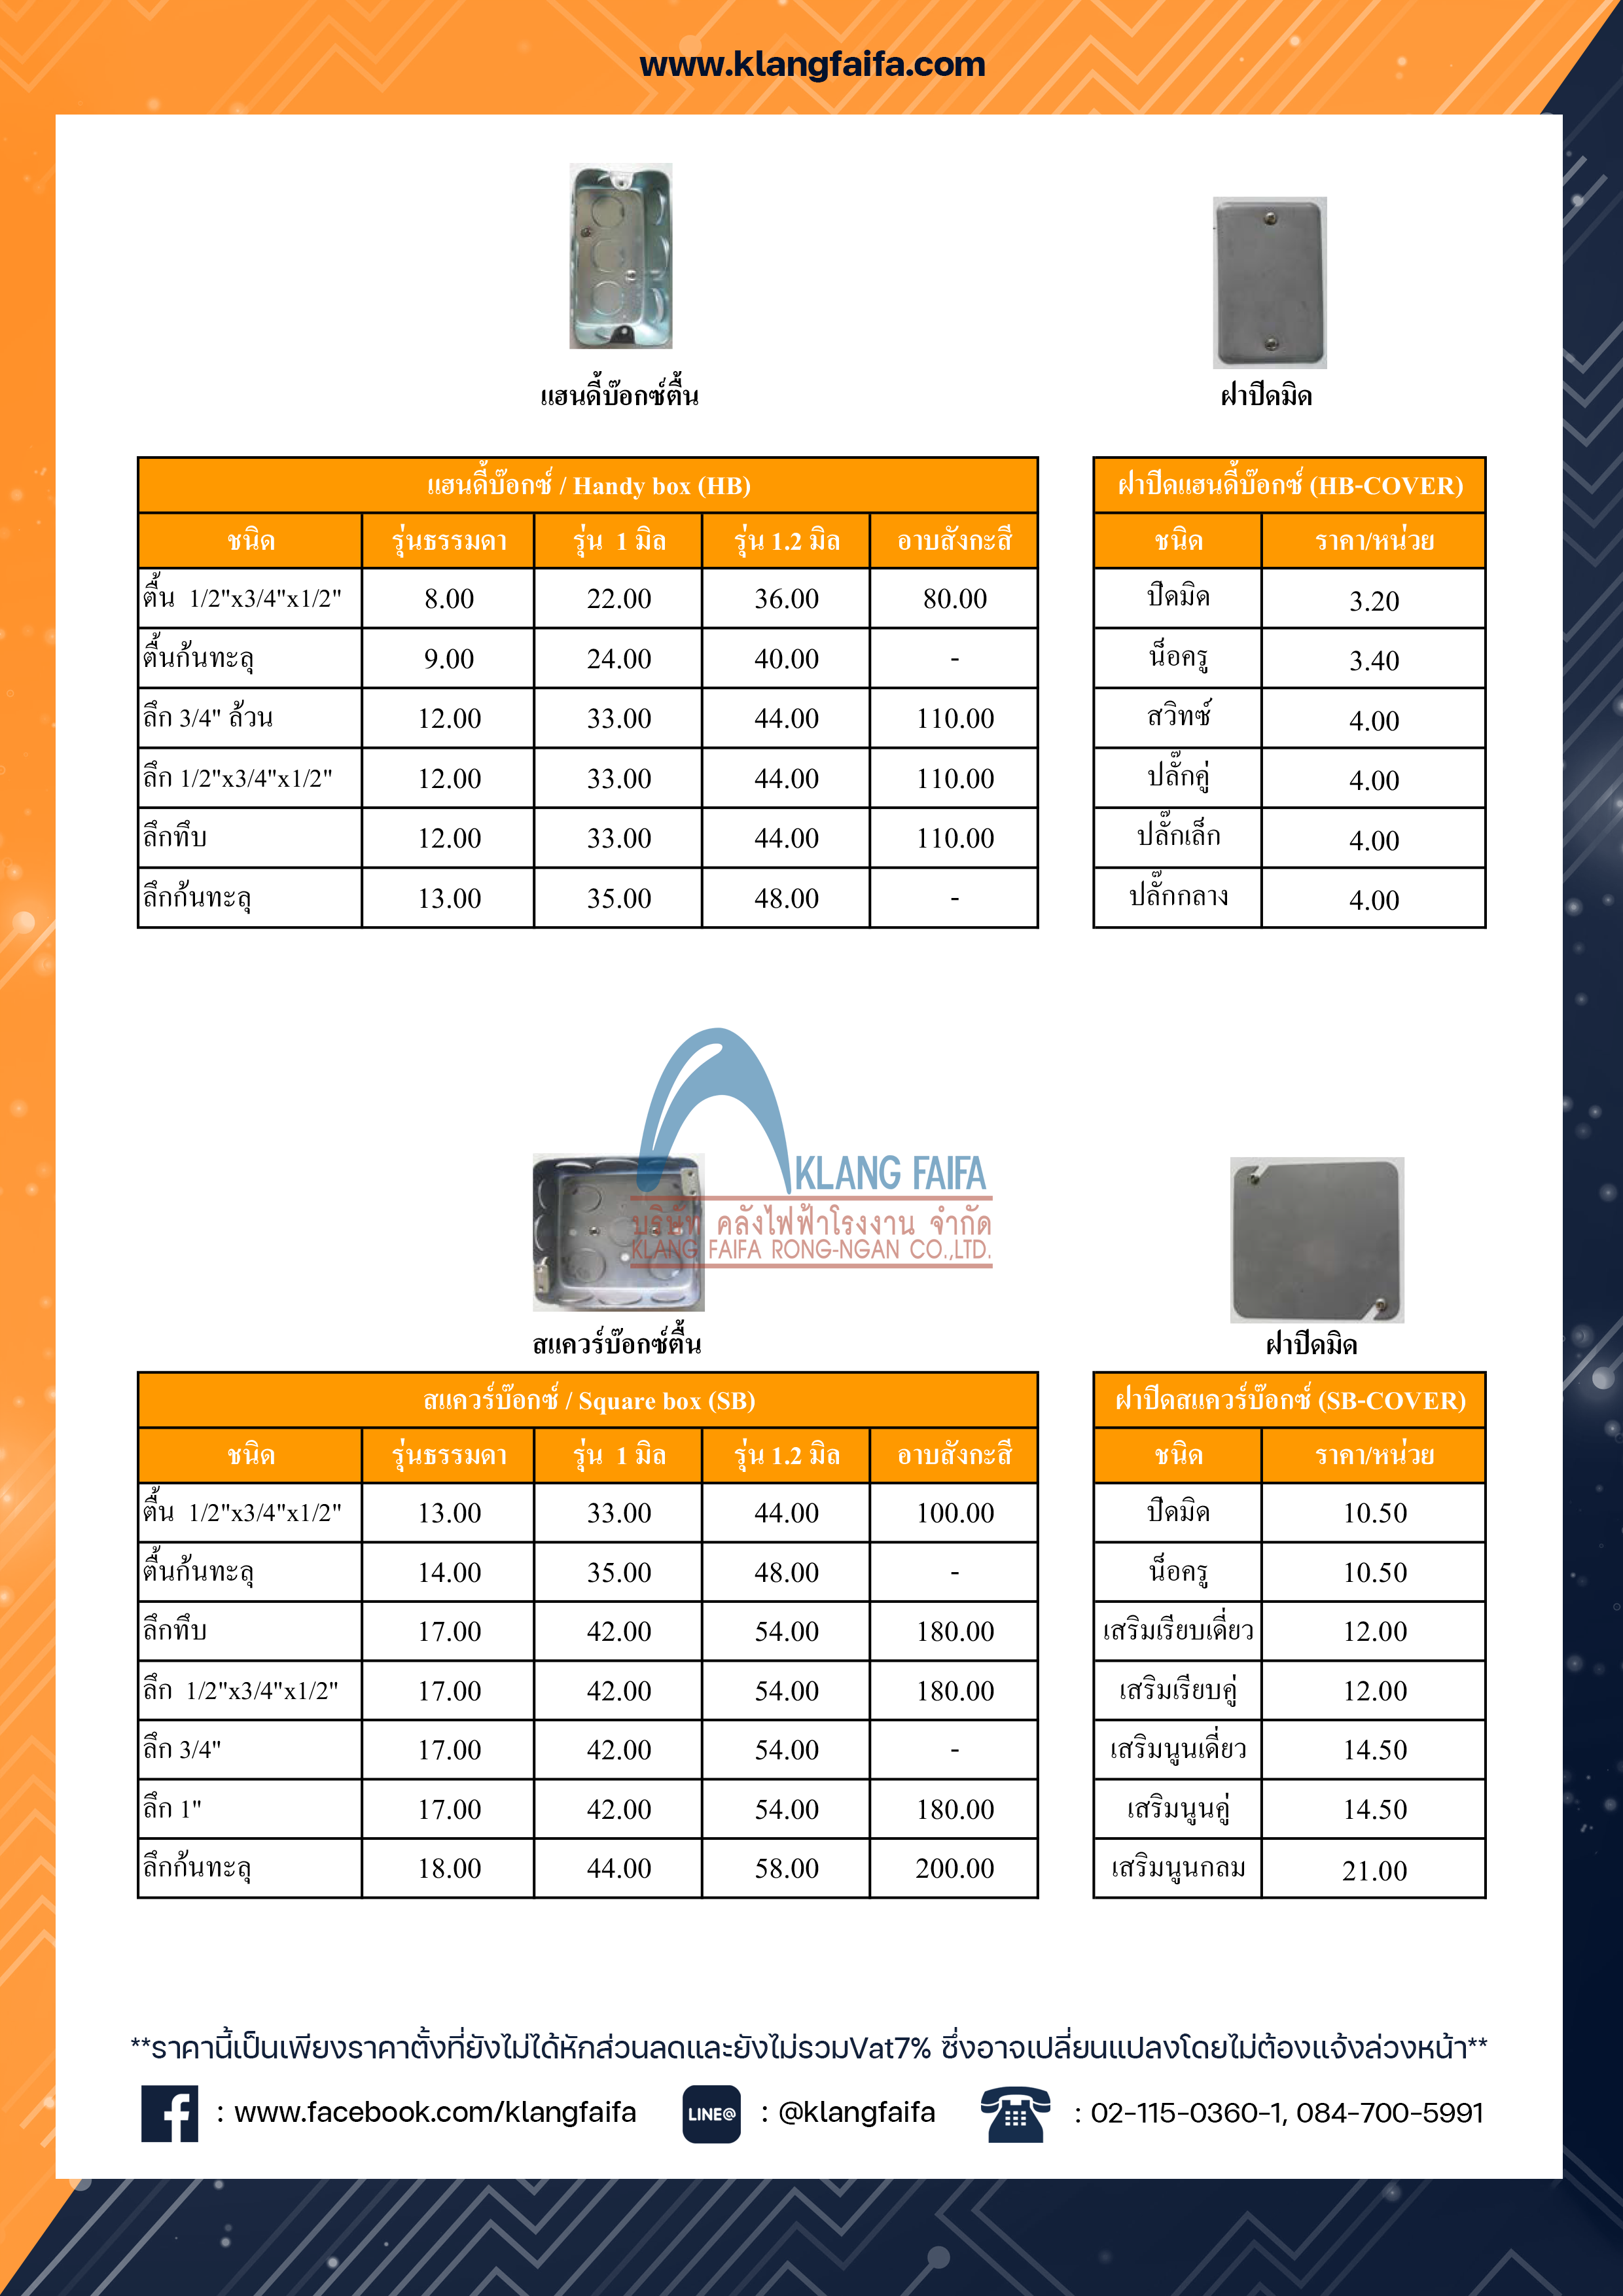 sc, conduit_fitting, coupling, connector, handybox, squarebox, Conduit fitting,SC,SEC,SteelCity,SquareBox,HandyBox,Coupling,Connector,FlexConduit,Fittingราคาถูก,Connectorราคาถูก,SCconnector,แฮนดี้บ็อกราคาถูก,สแควบ๊อกราคาถูก,3